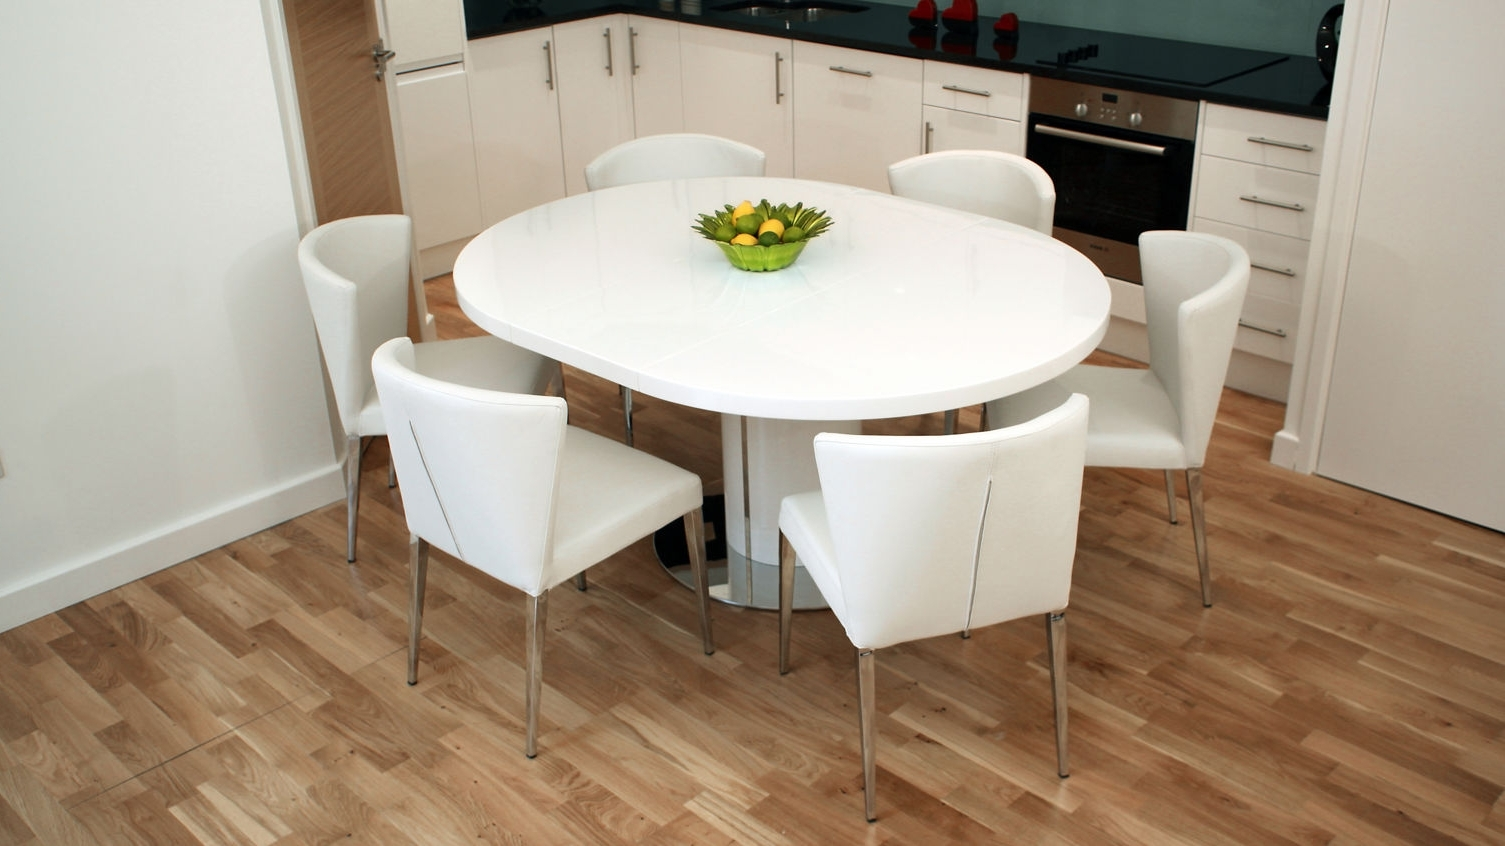 Current Kitchen Table Design  White Chairs And Round Dining Table  White For Shiny White Dining Tables (View 20 of 25)